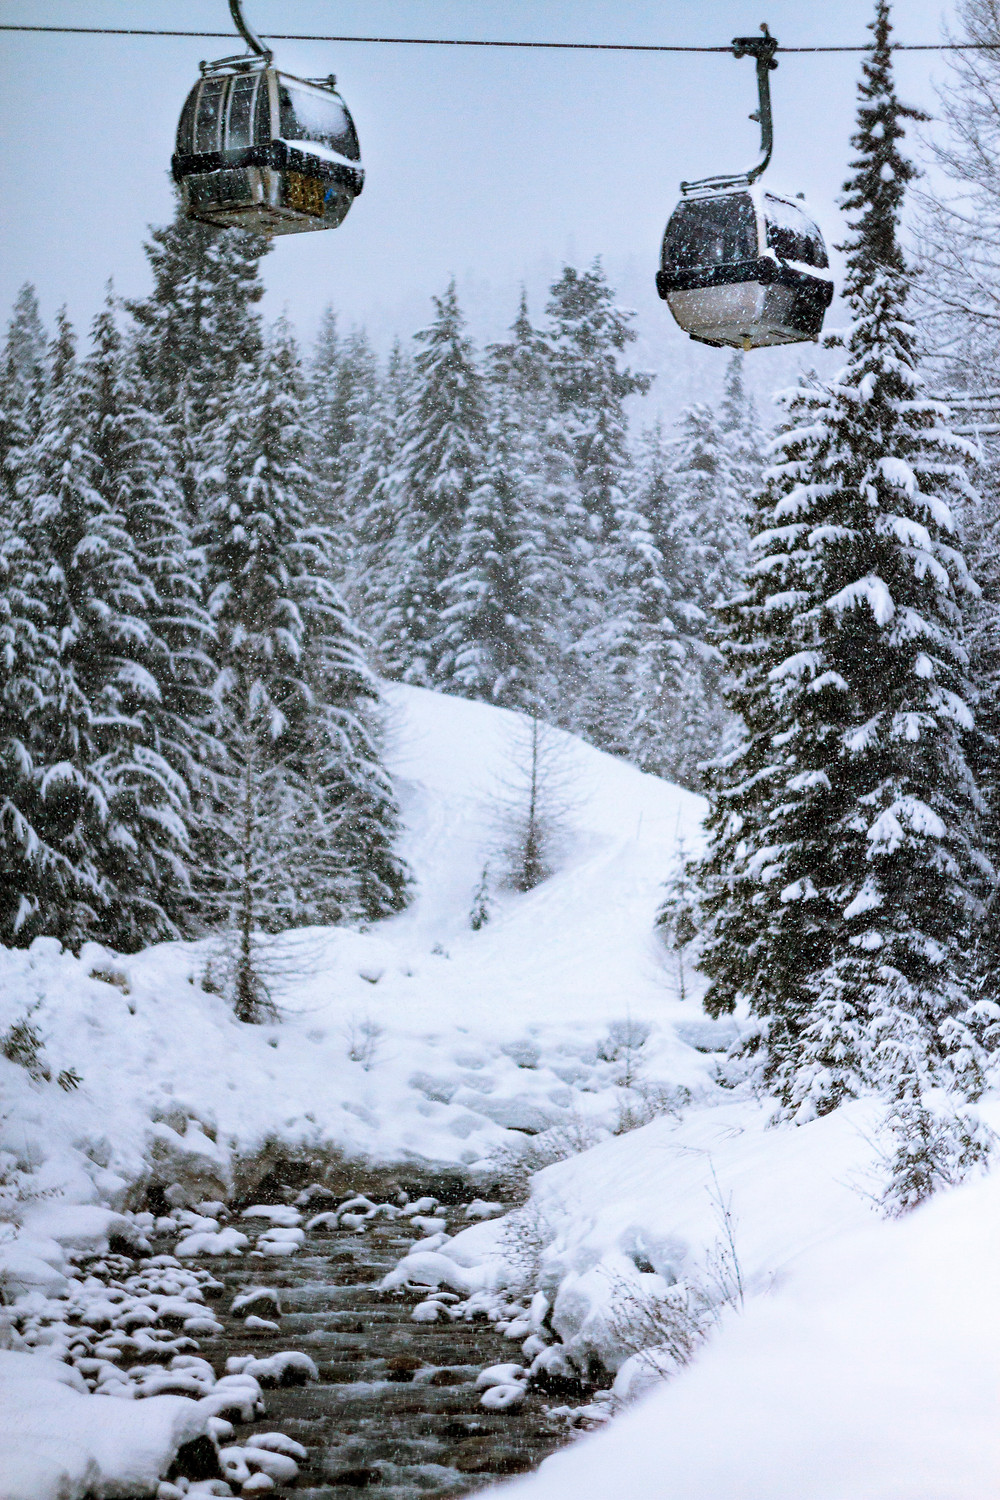 Lots of Fresh Snow Made For A Surreal Image Of The Whistler/Blackcomb Gondola